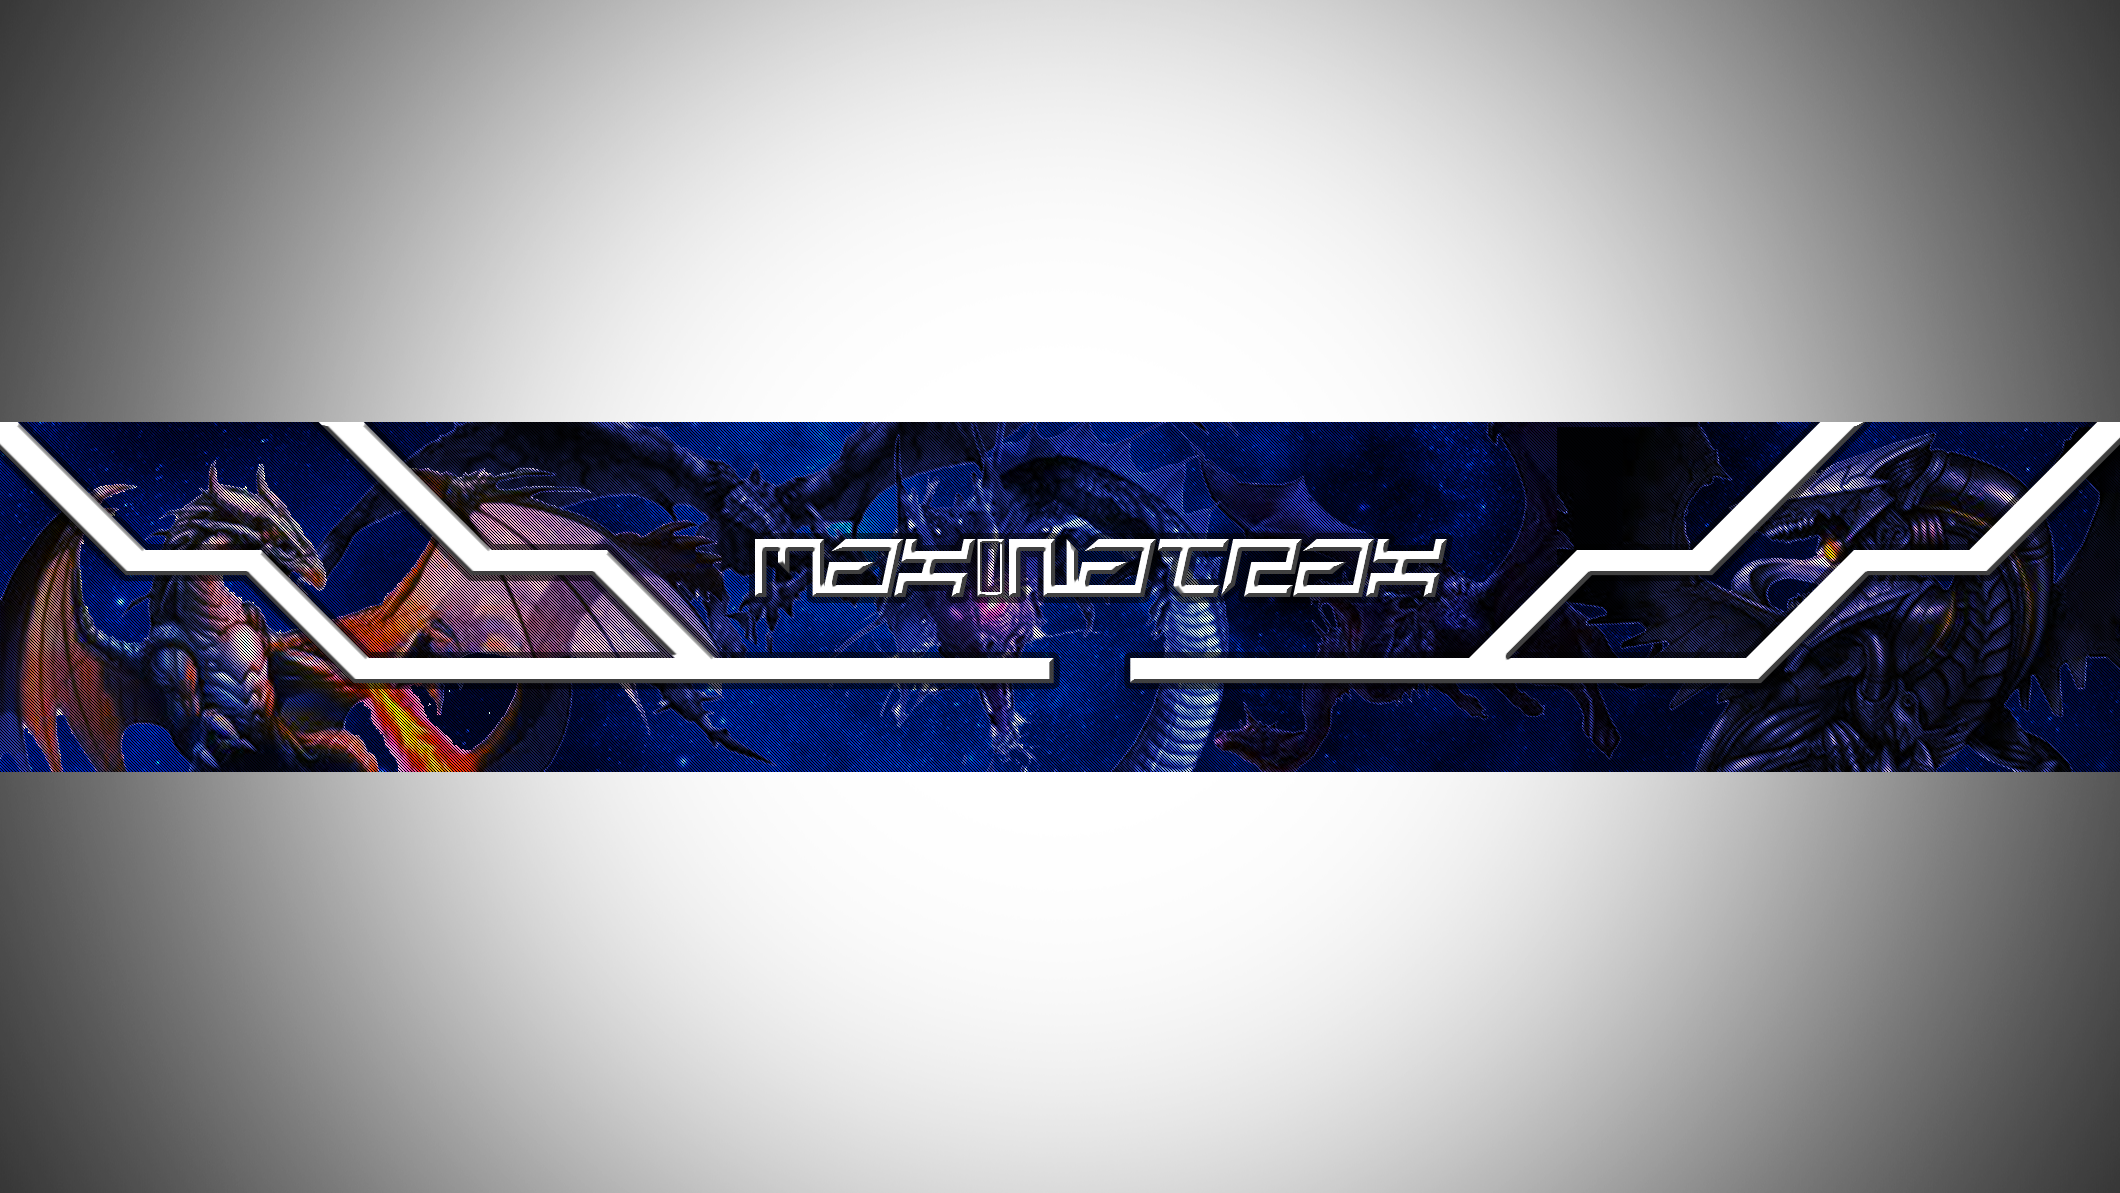 youtube banner for my chanel dragons theme my youtube